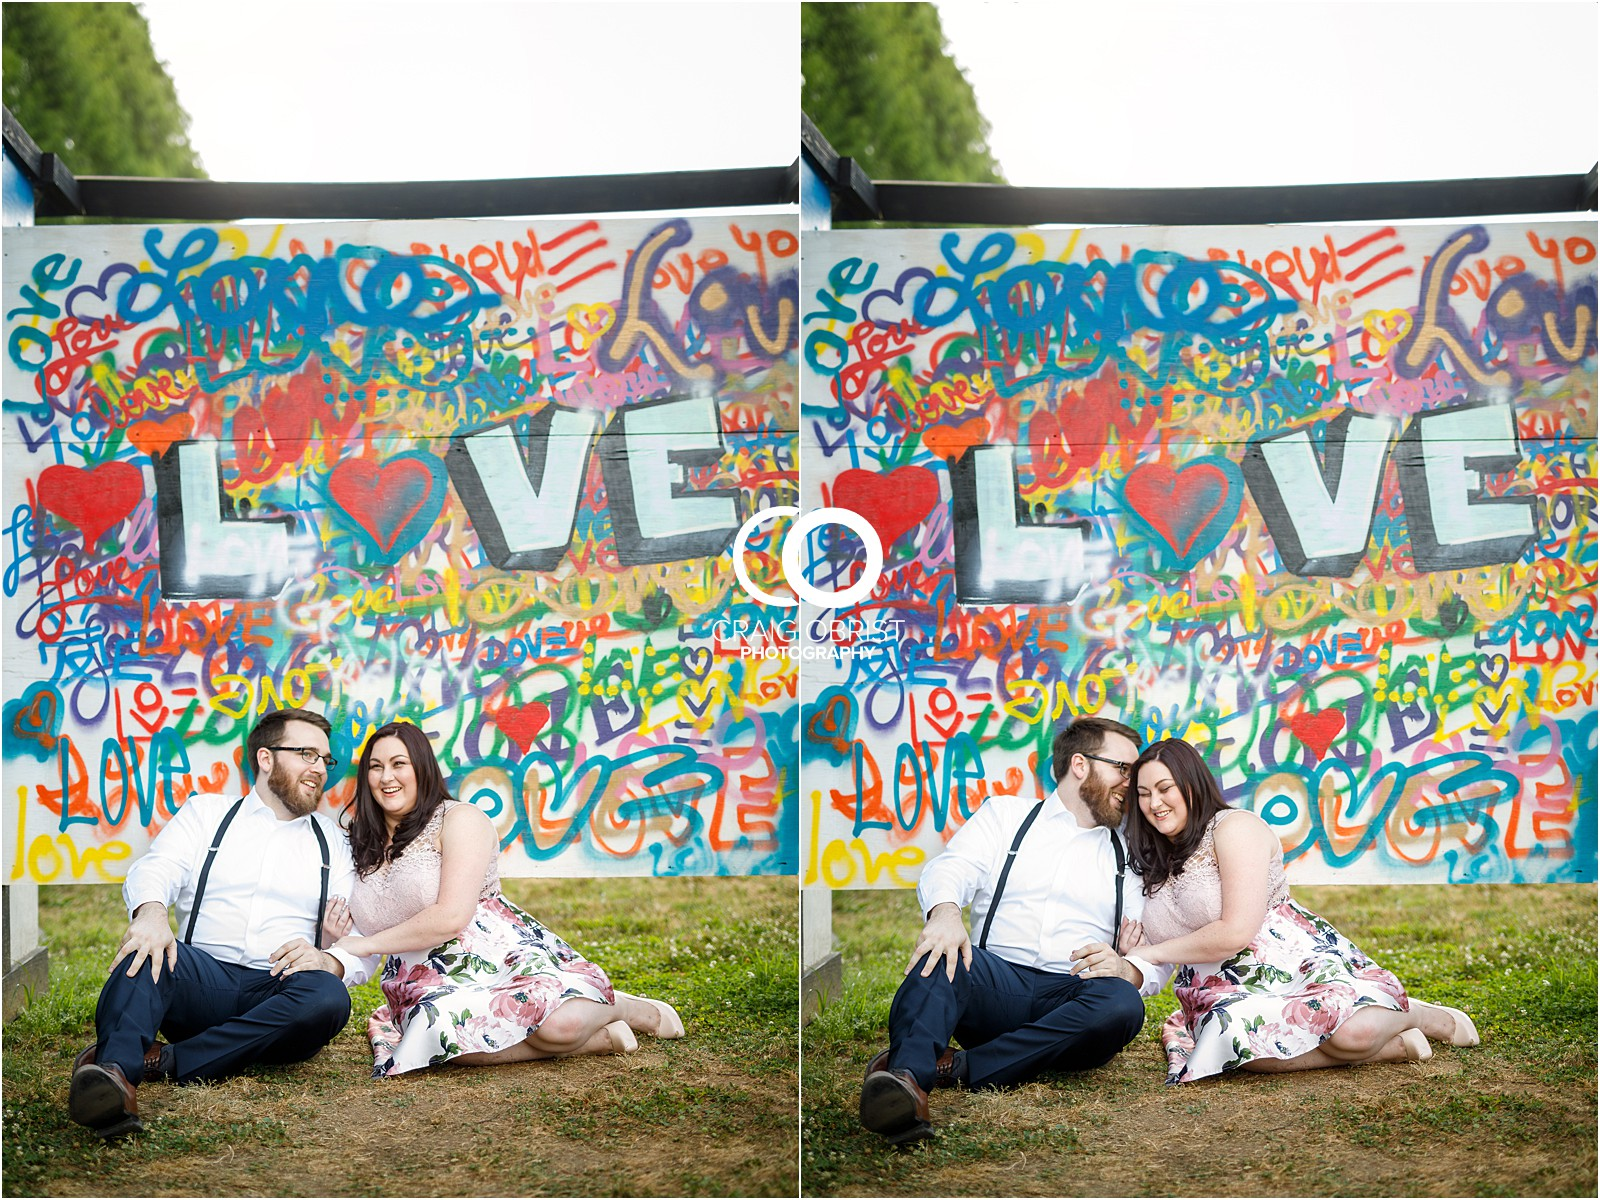 Ponce city markey Atlanta Beltline Piedmont Park engagement portraits_0005.jpg